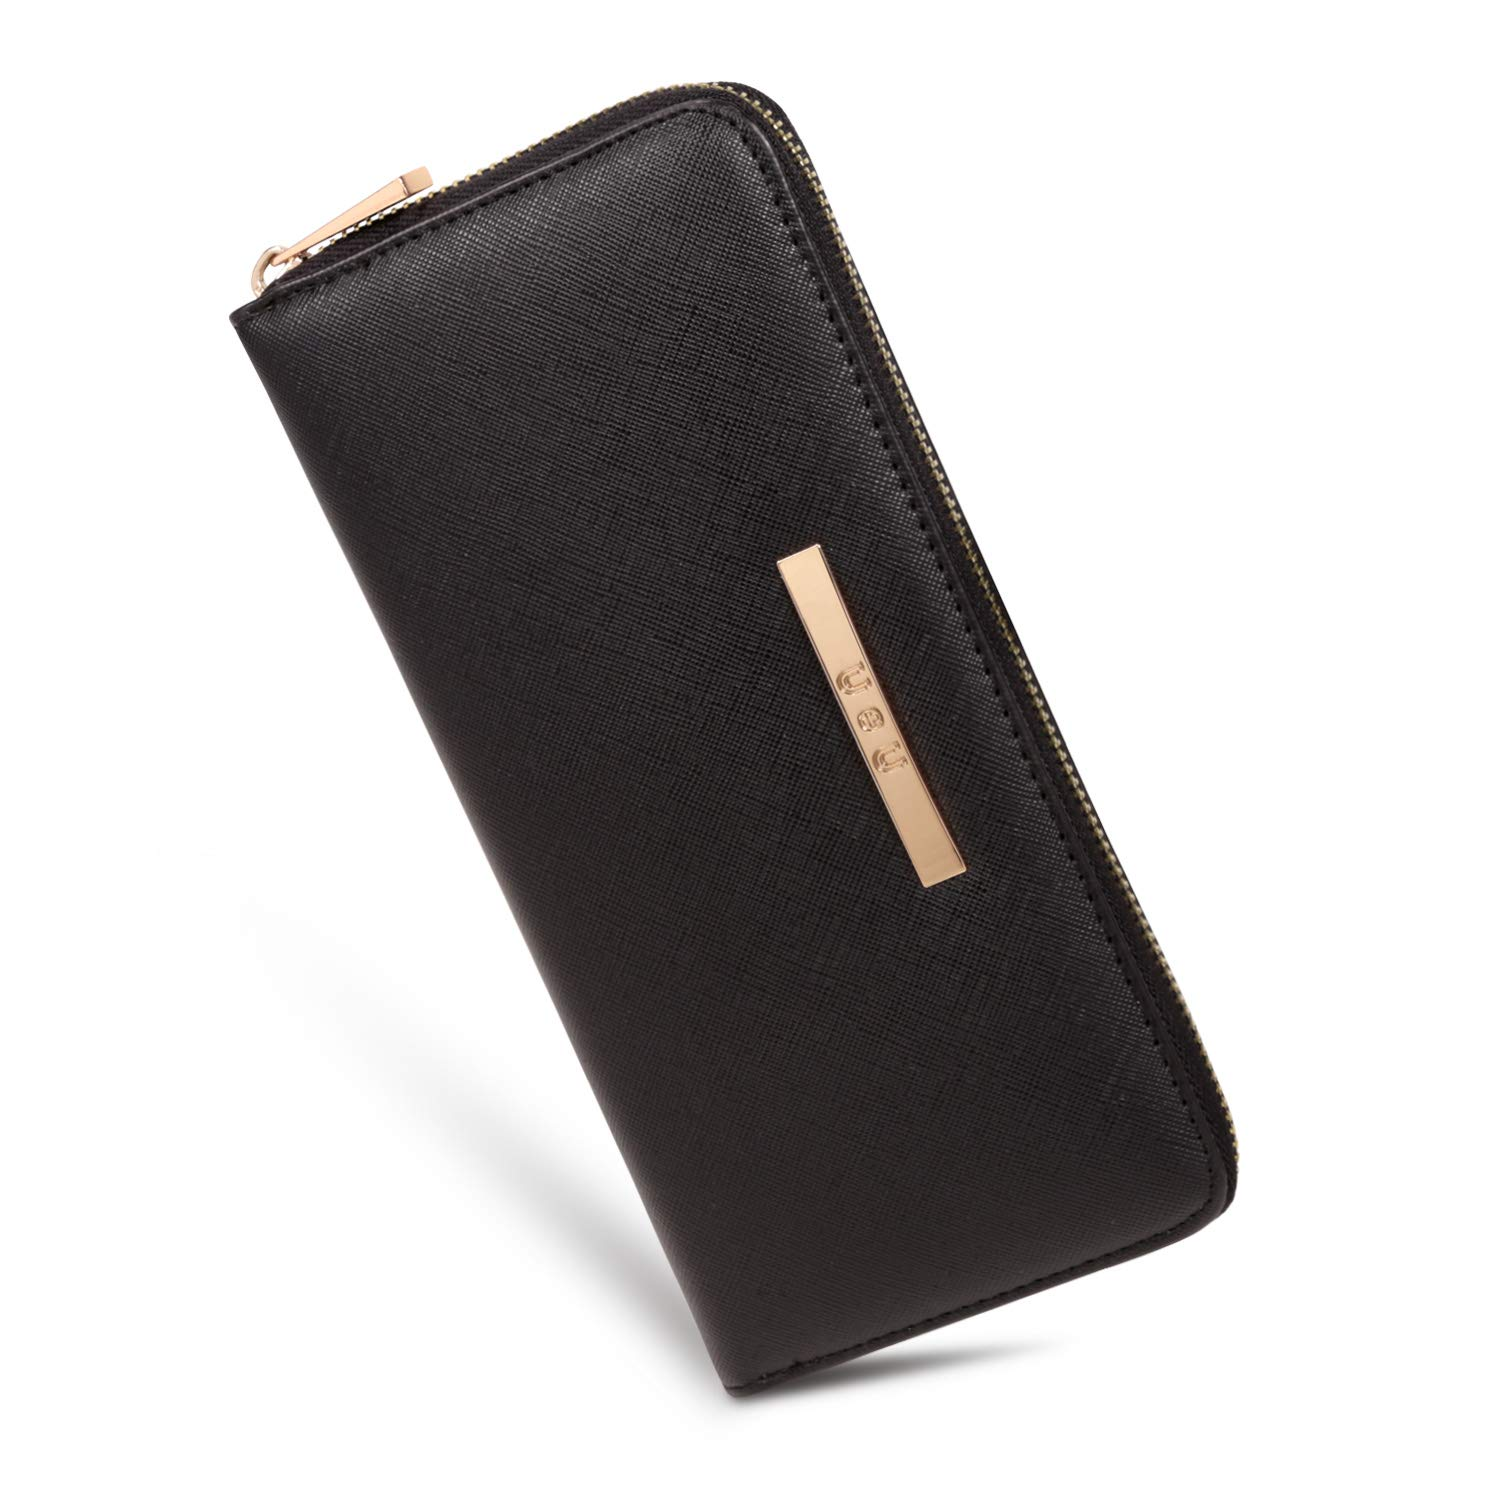 U+U Womens Leather Wallet RFID Blocking Card Holder Cellphone Clutch Ladies Purse with 8 Card Slots